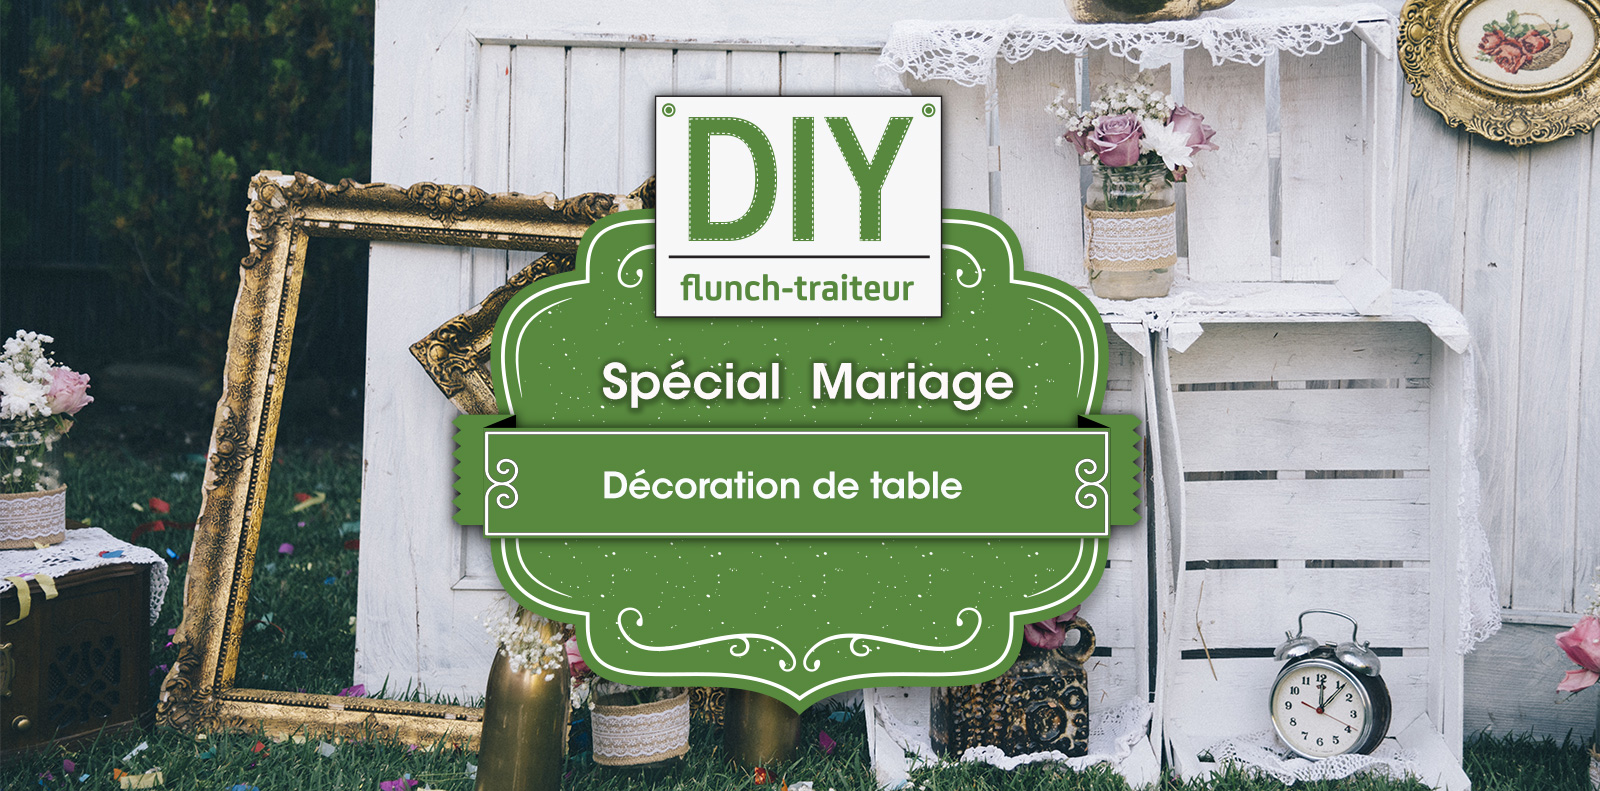 décoration de table diy